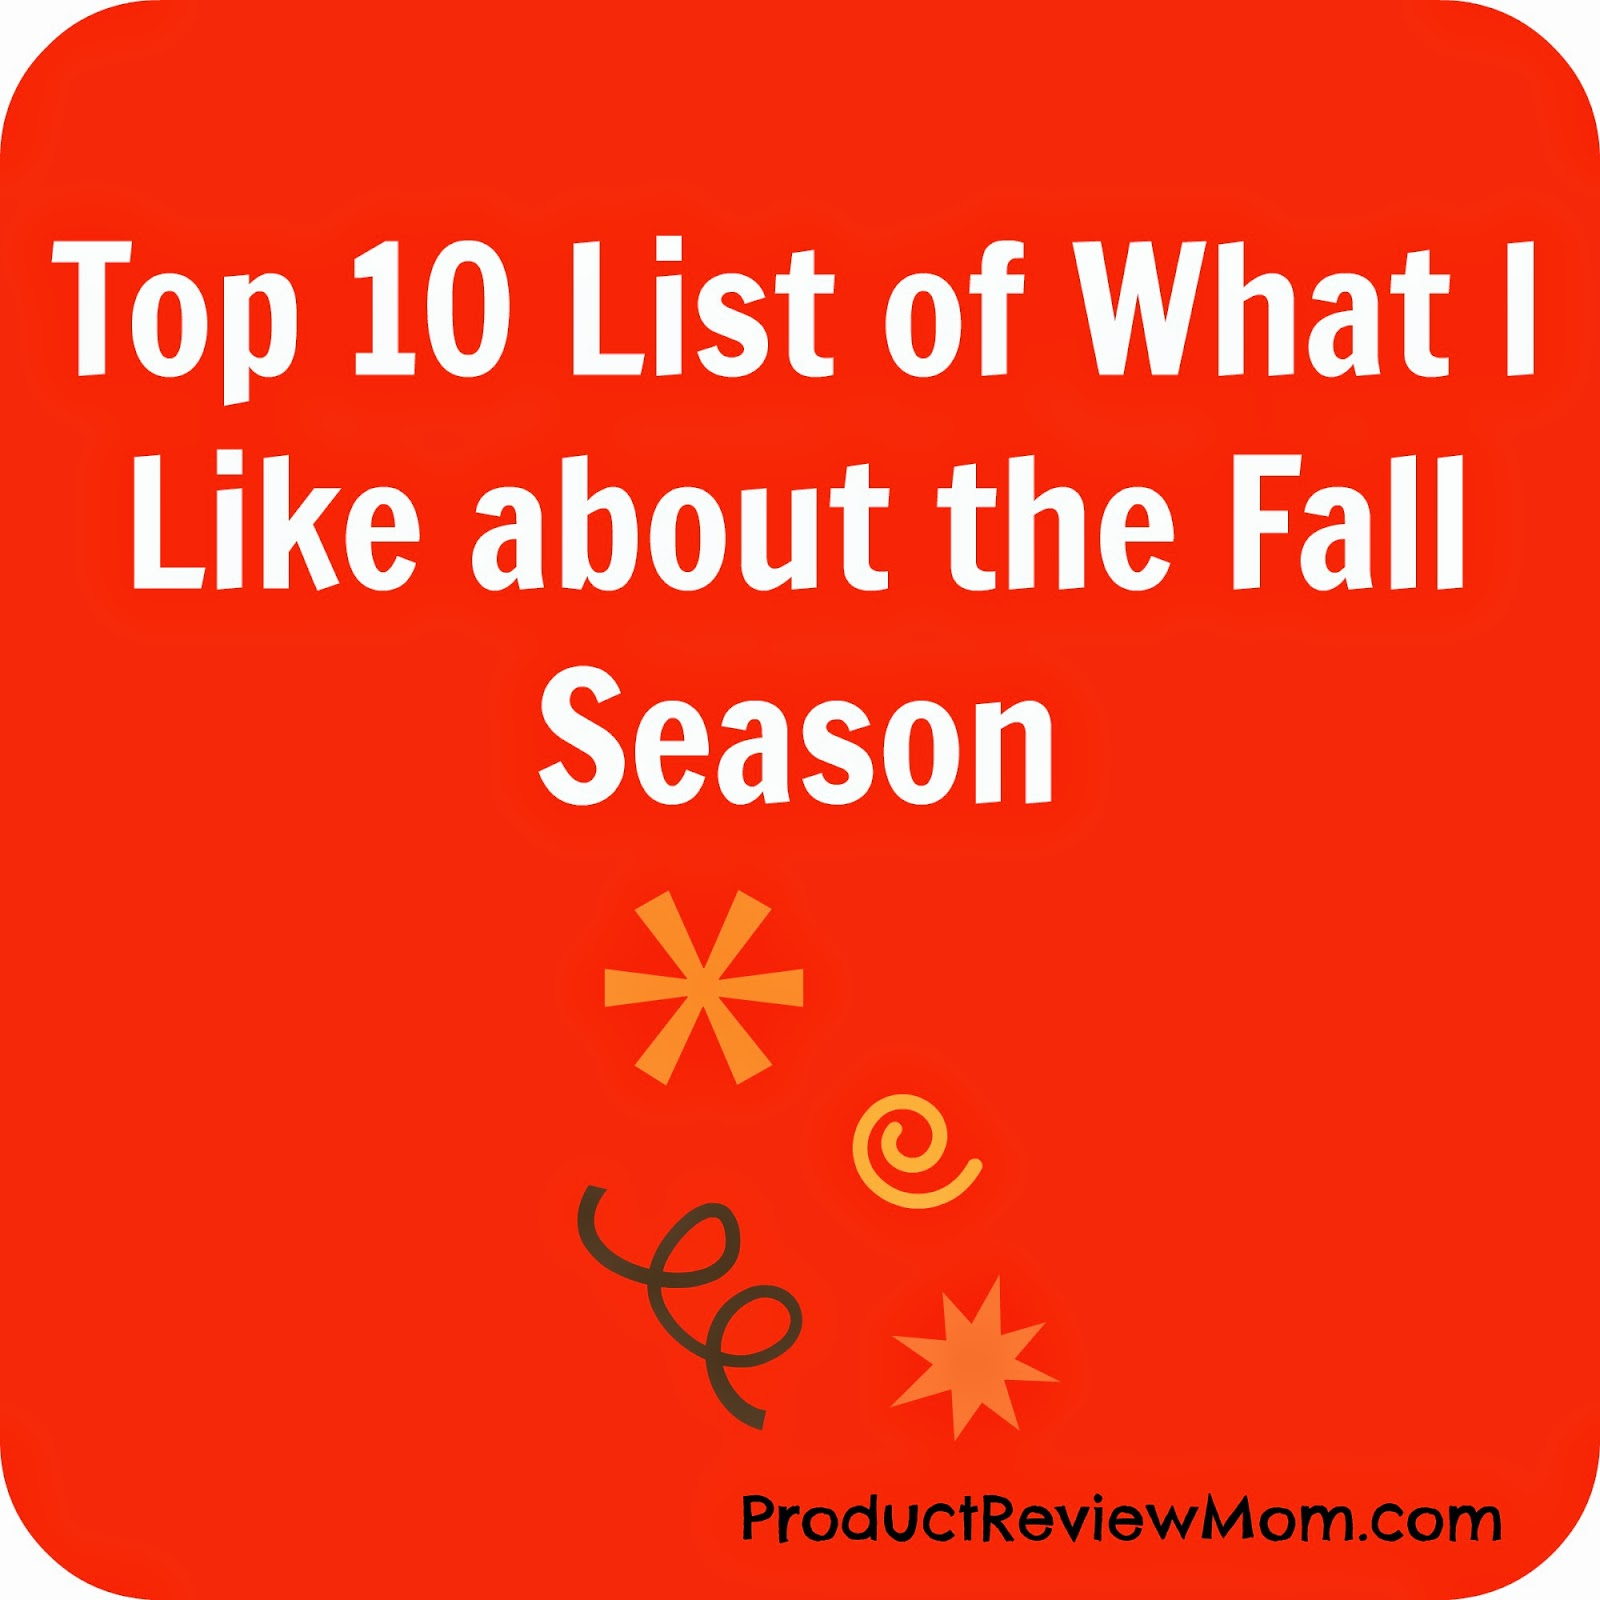 Top 10 List of What I Like about the Fall Season #FallSeason via www.Productreviewmom.com